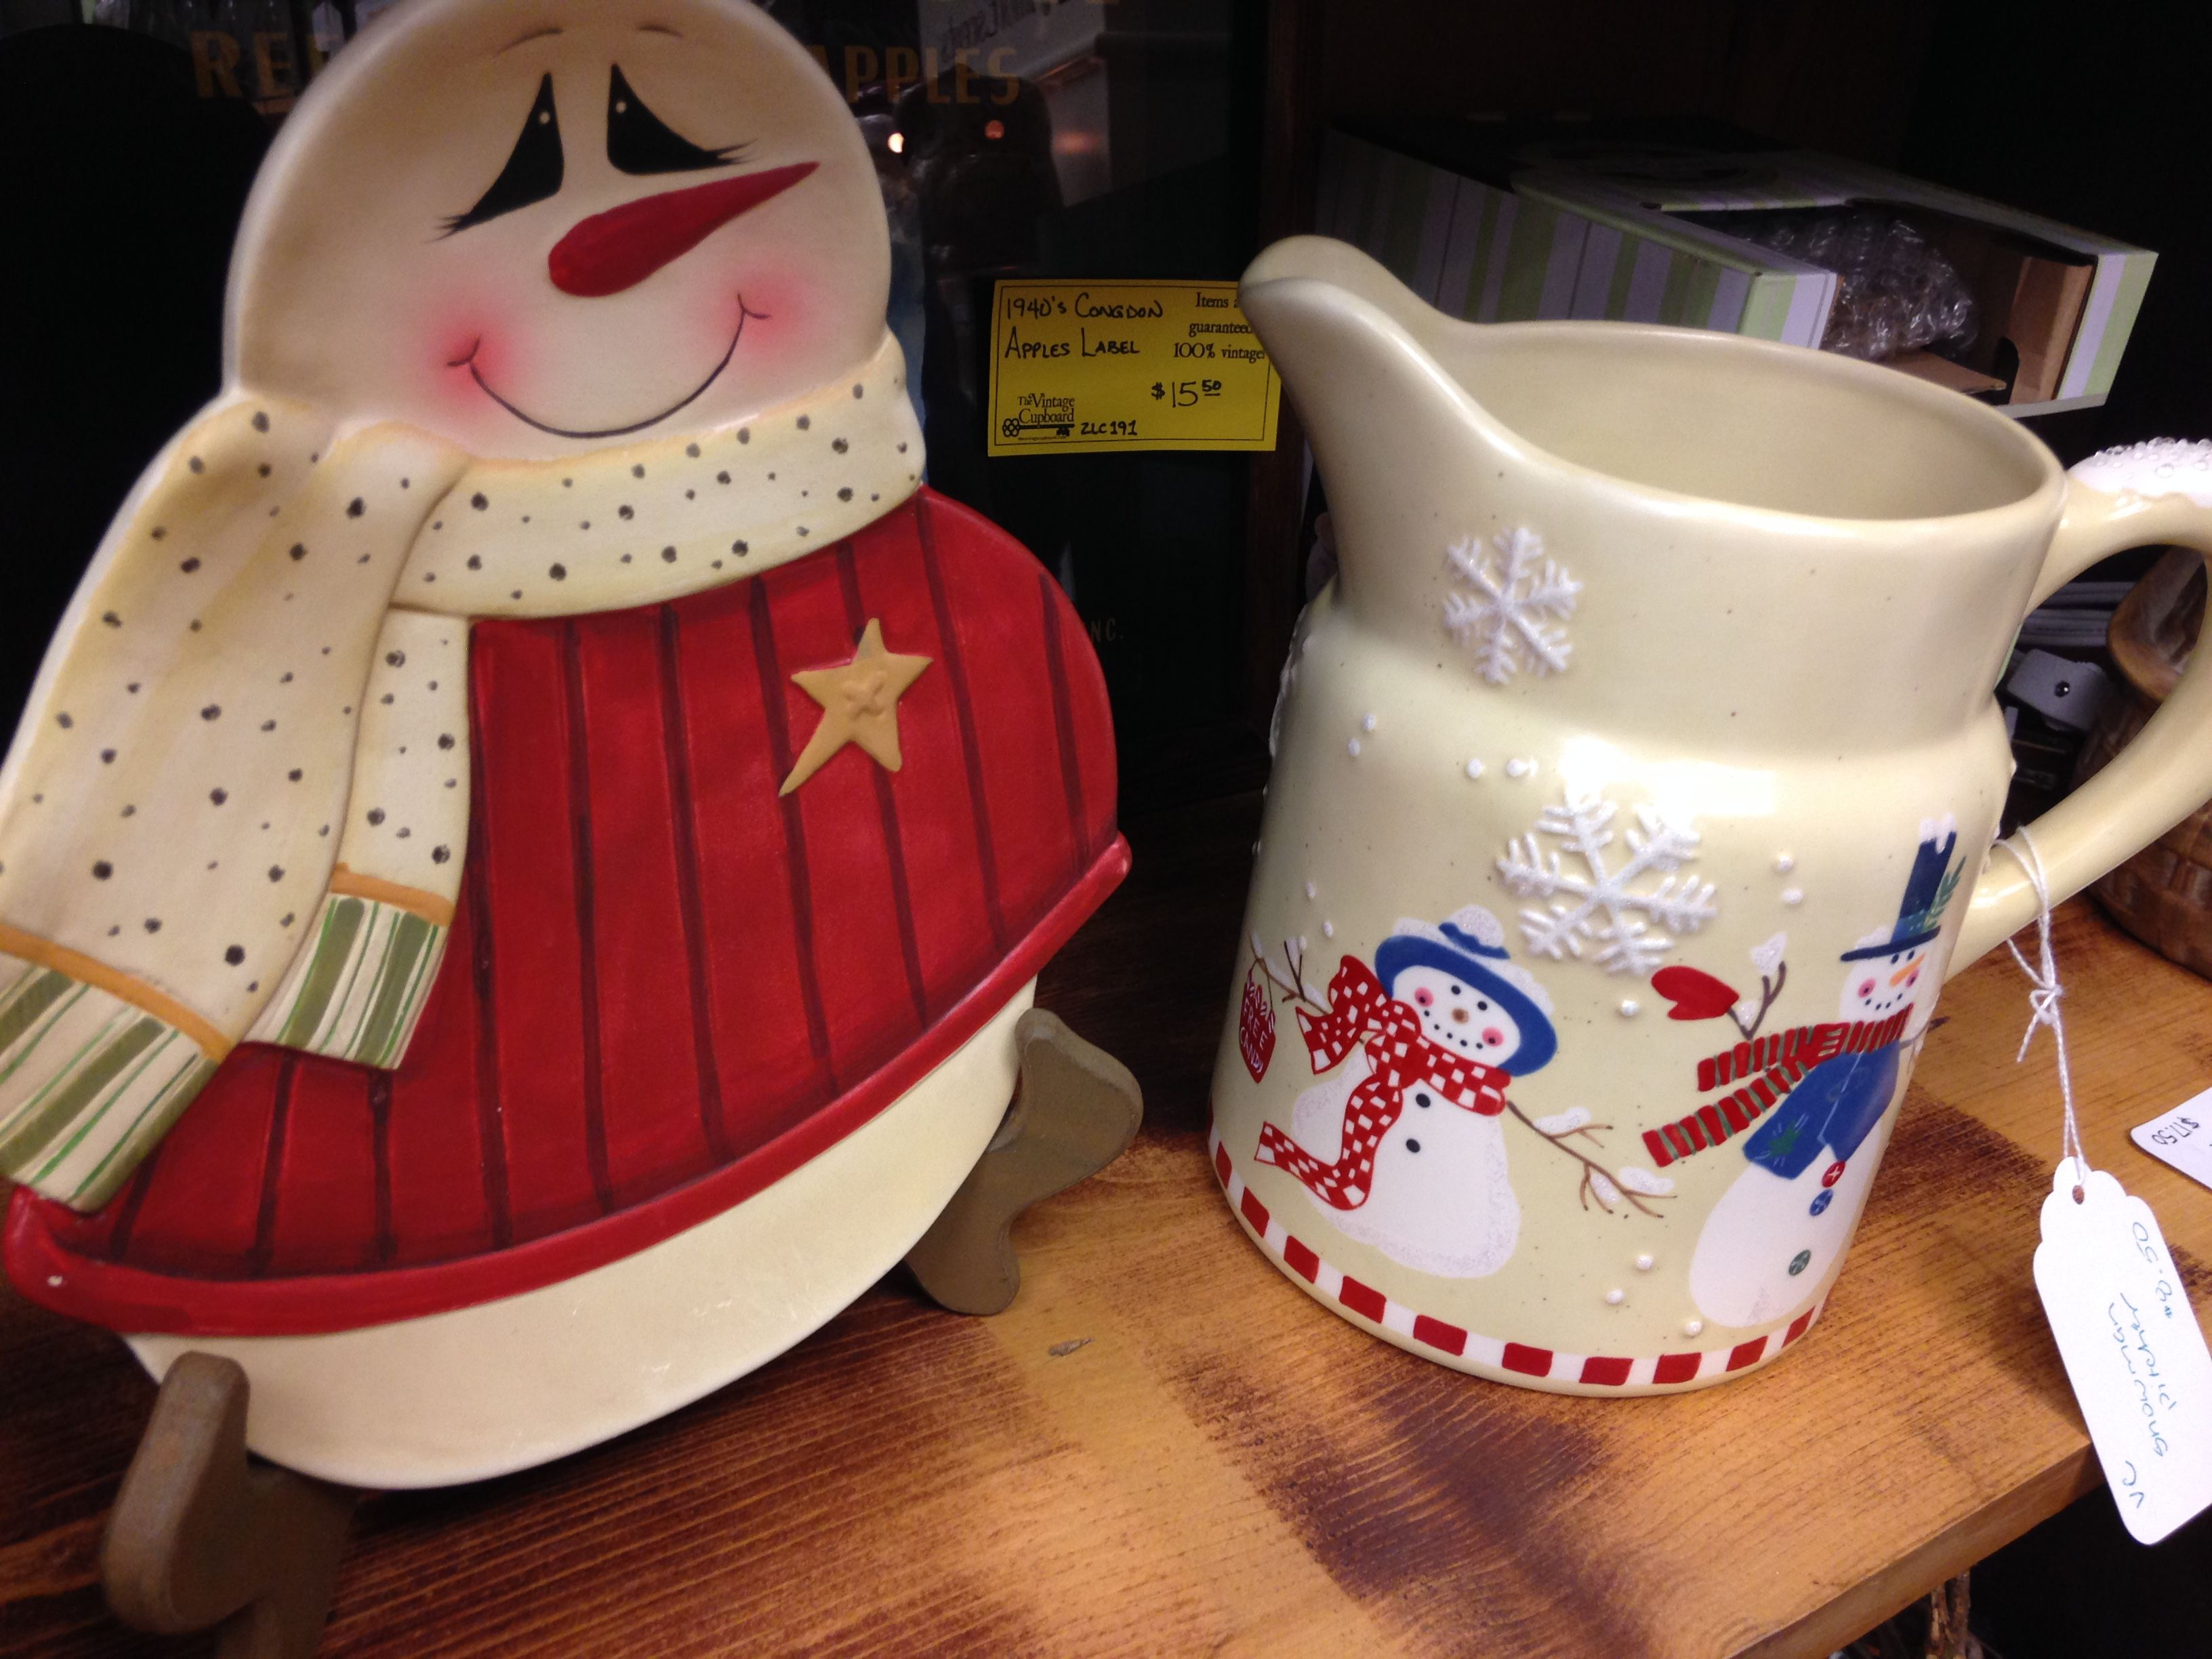 Snowman plate (left) and pitcher (right).